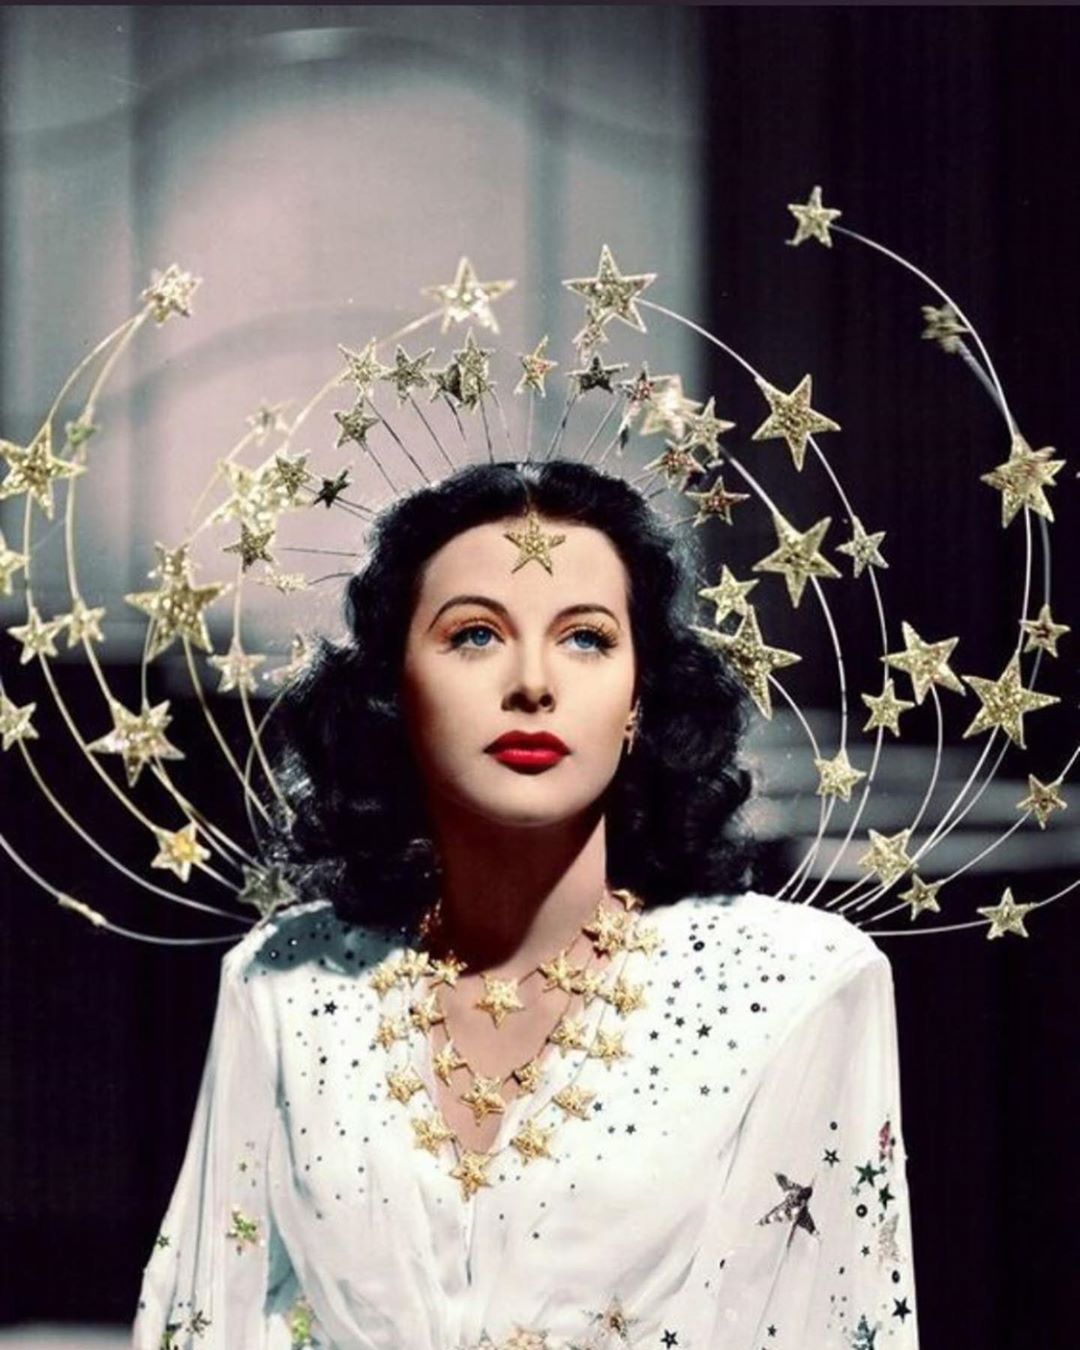 Bombshell. The Hedy Lamarr Story 2